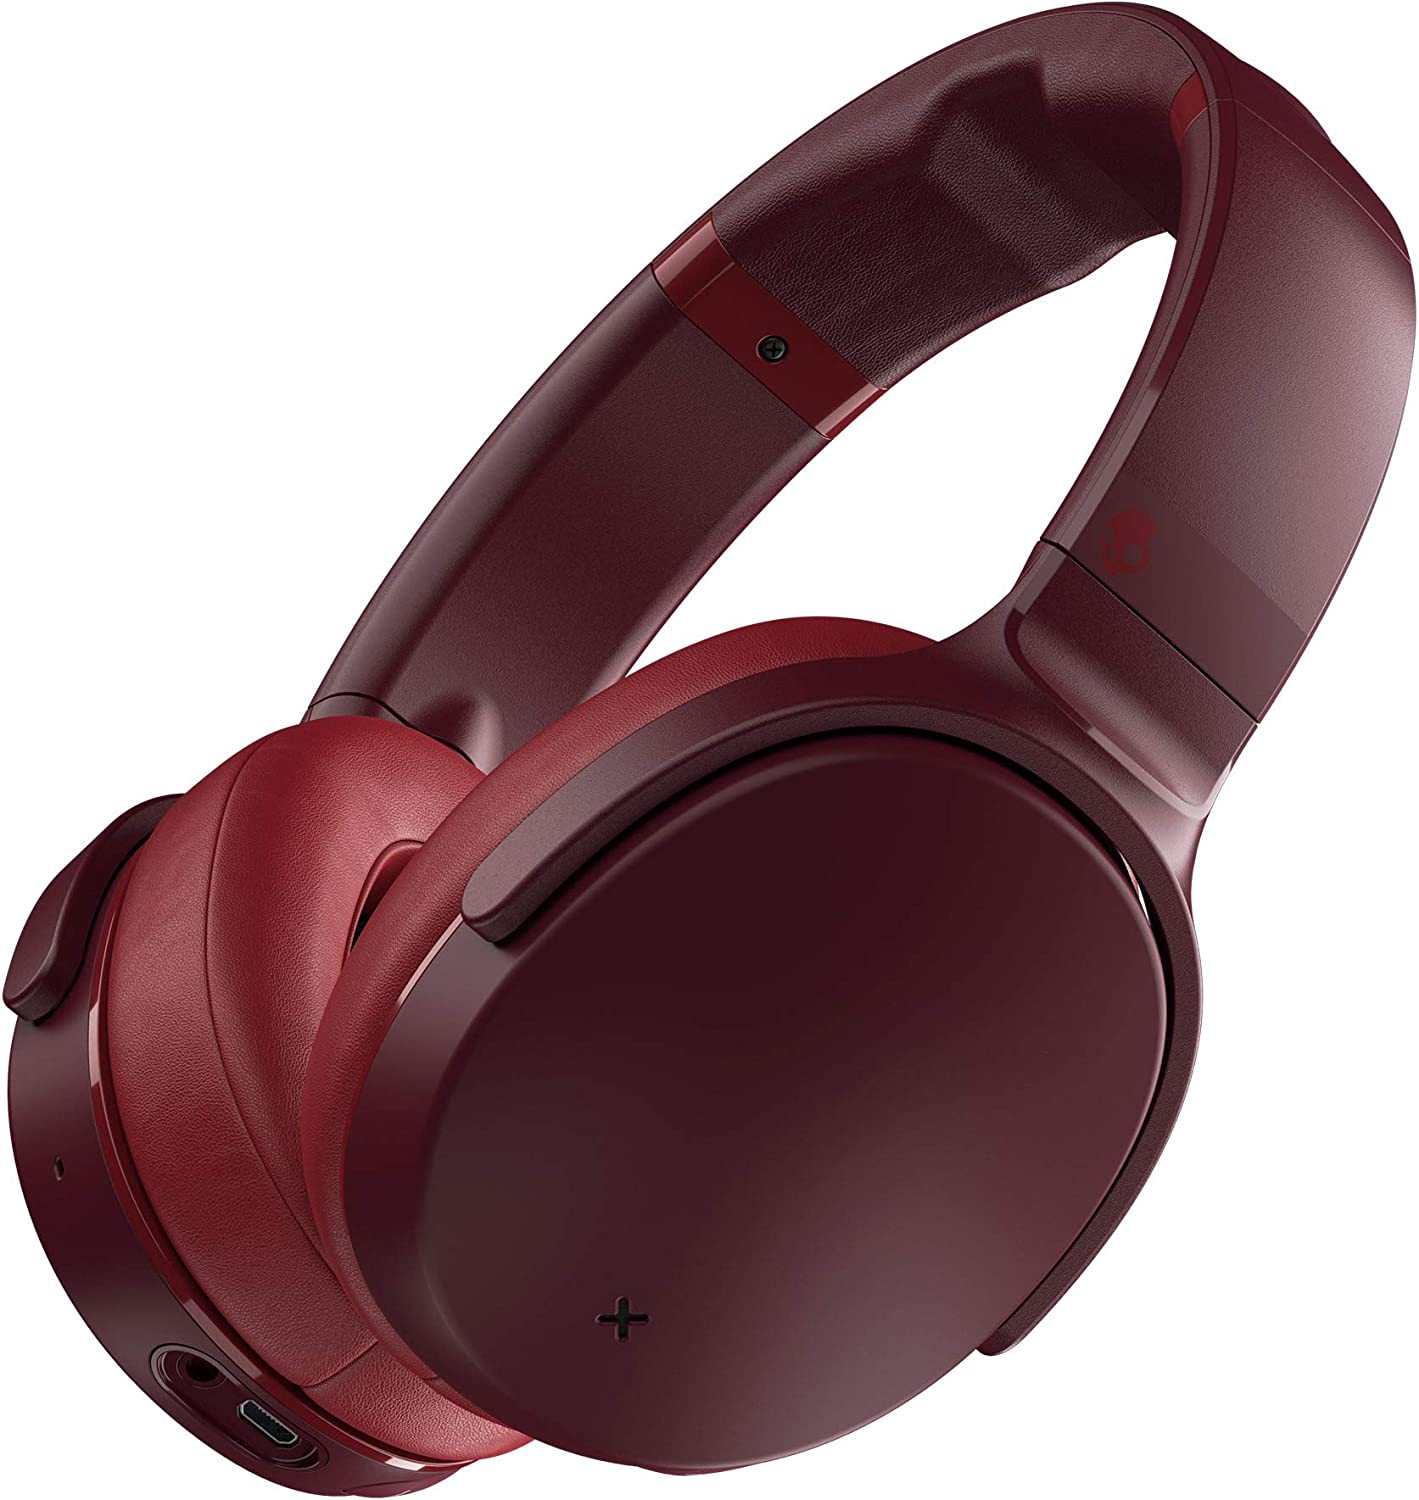 Skullcandy Venue Active Noise Cancelling Wireless Headphones, Moab/Red